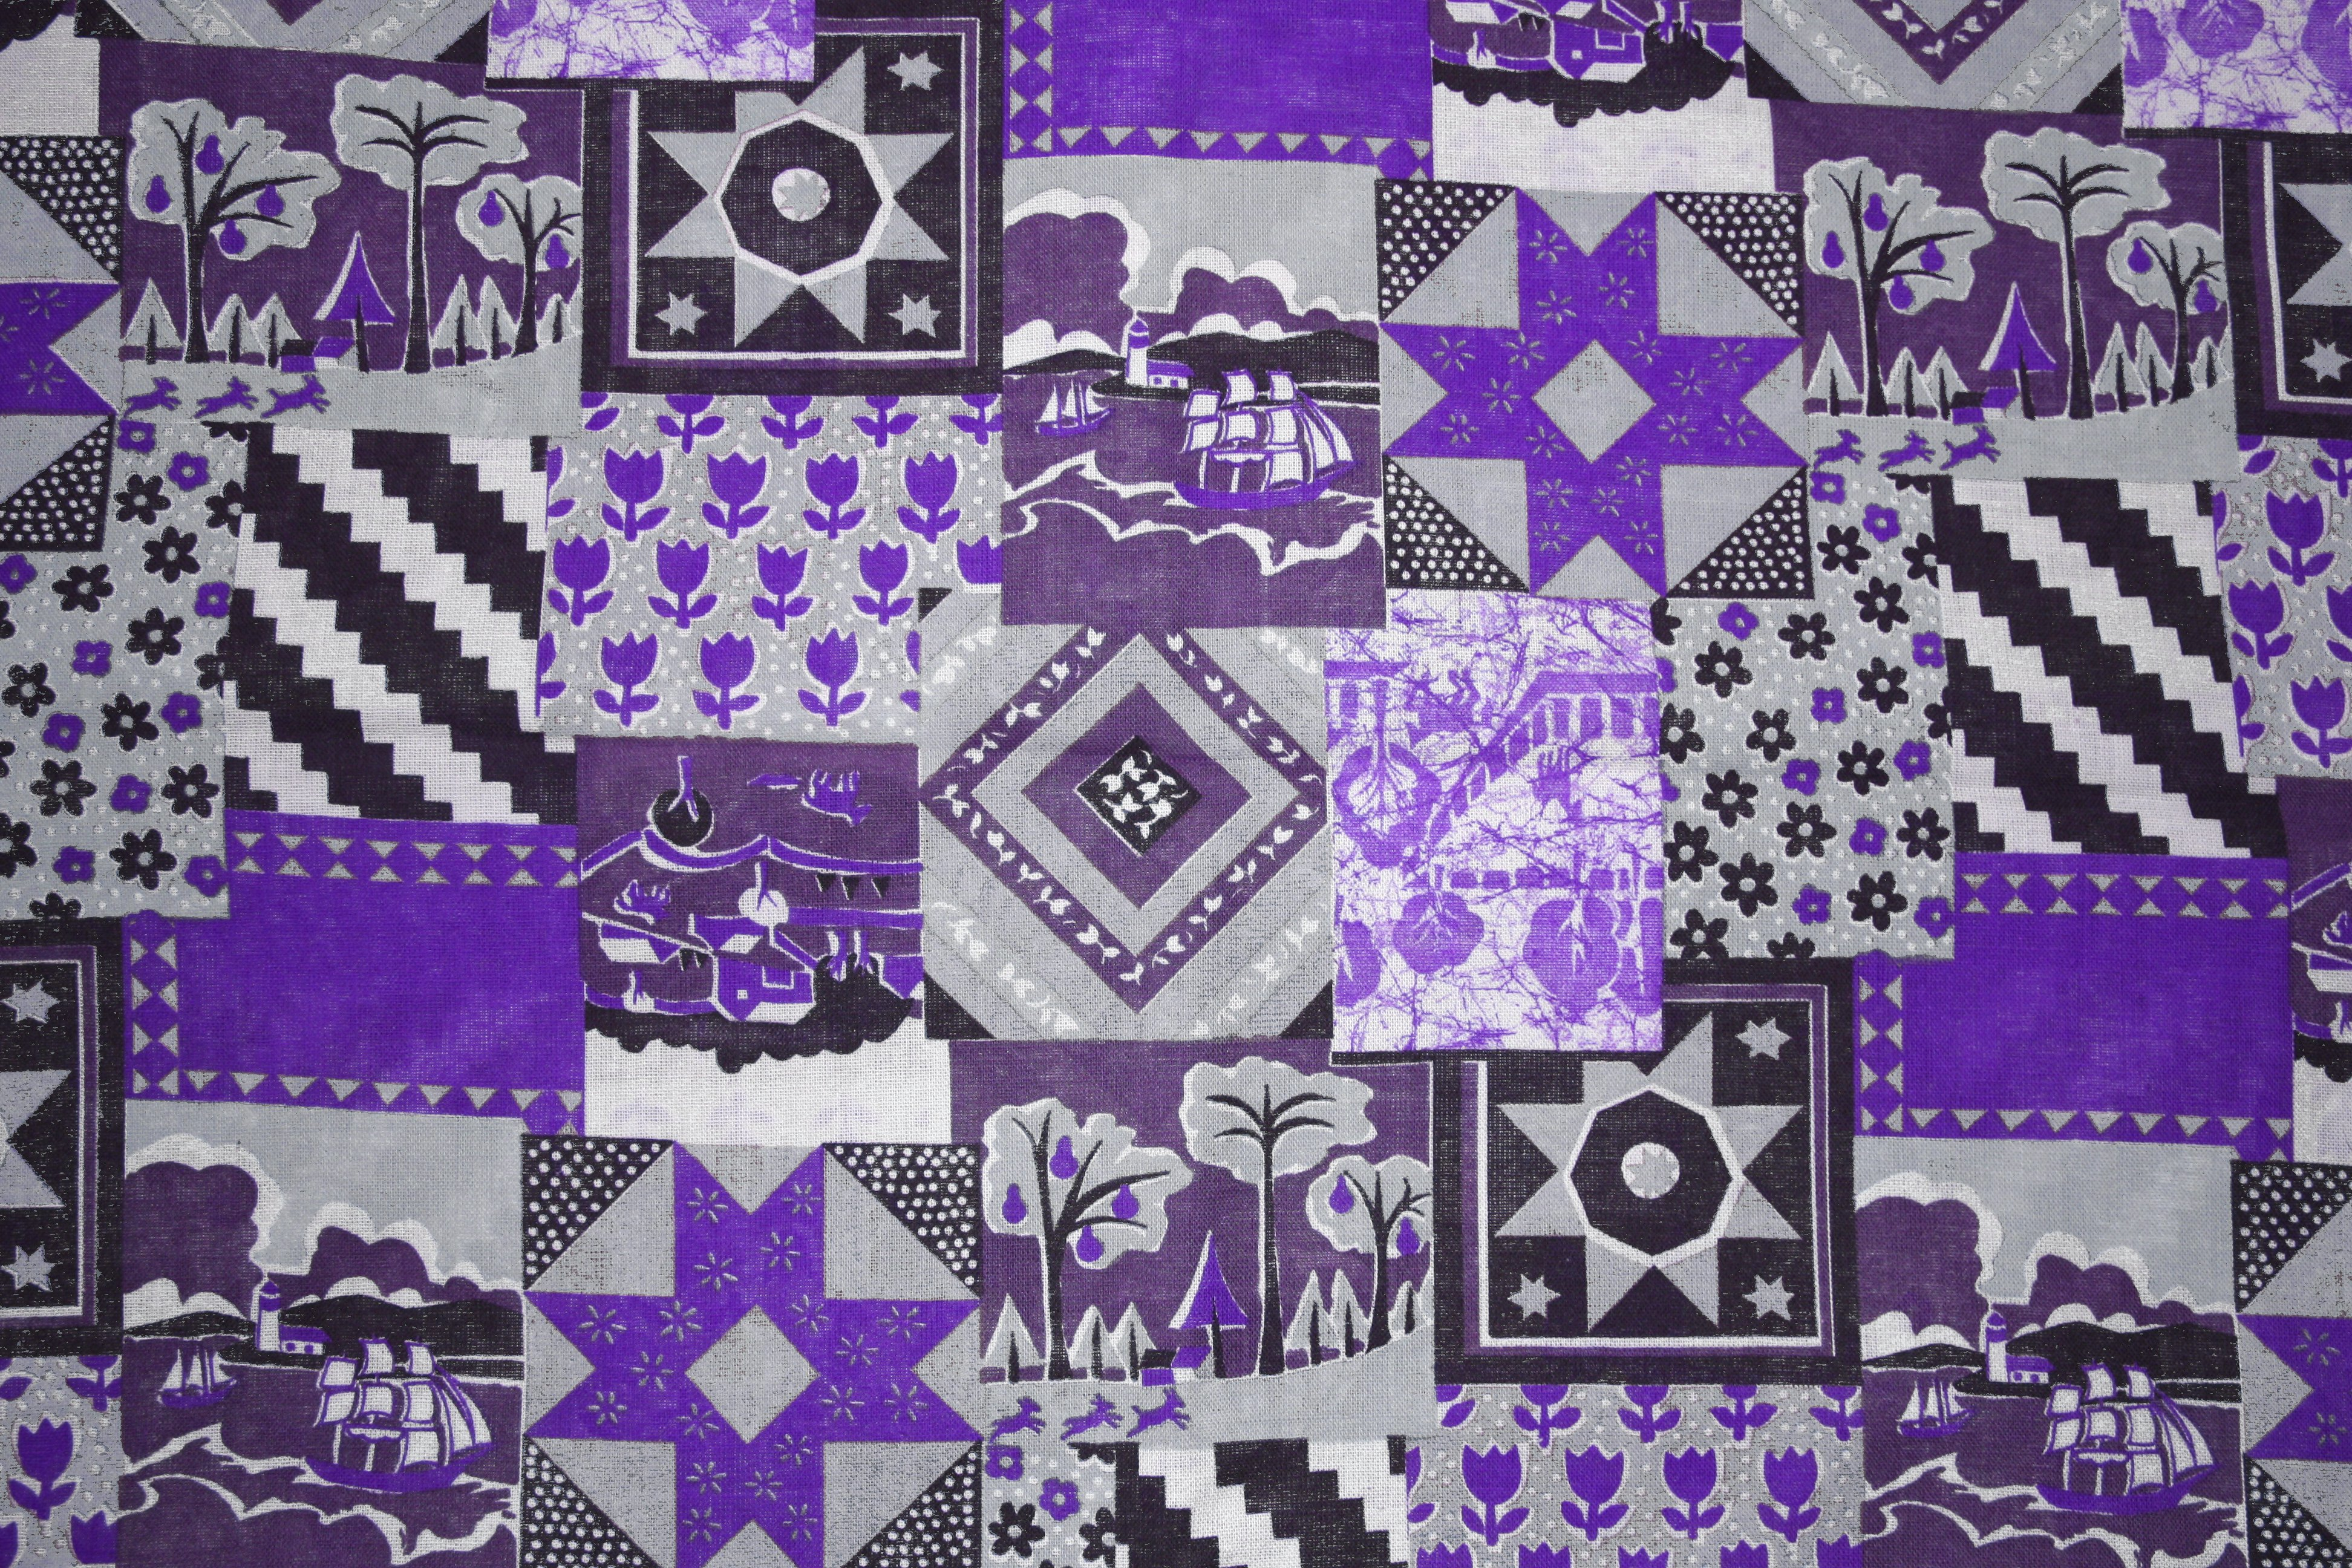 Purple Patchwork Quilt Fabric Texture Picture | Free Photograph ... : quilt purple - Adamdwight.com